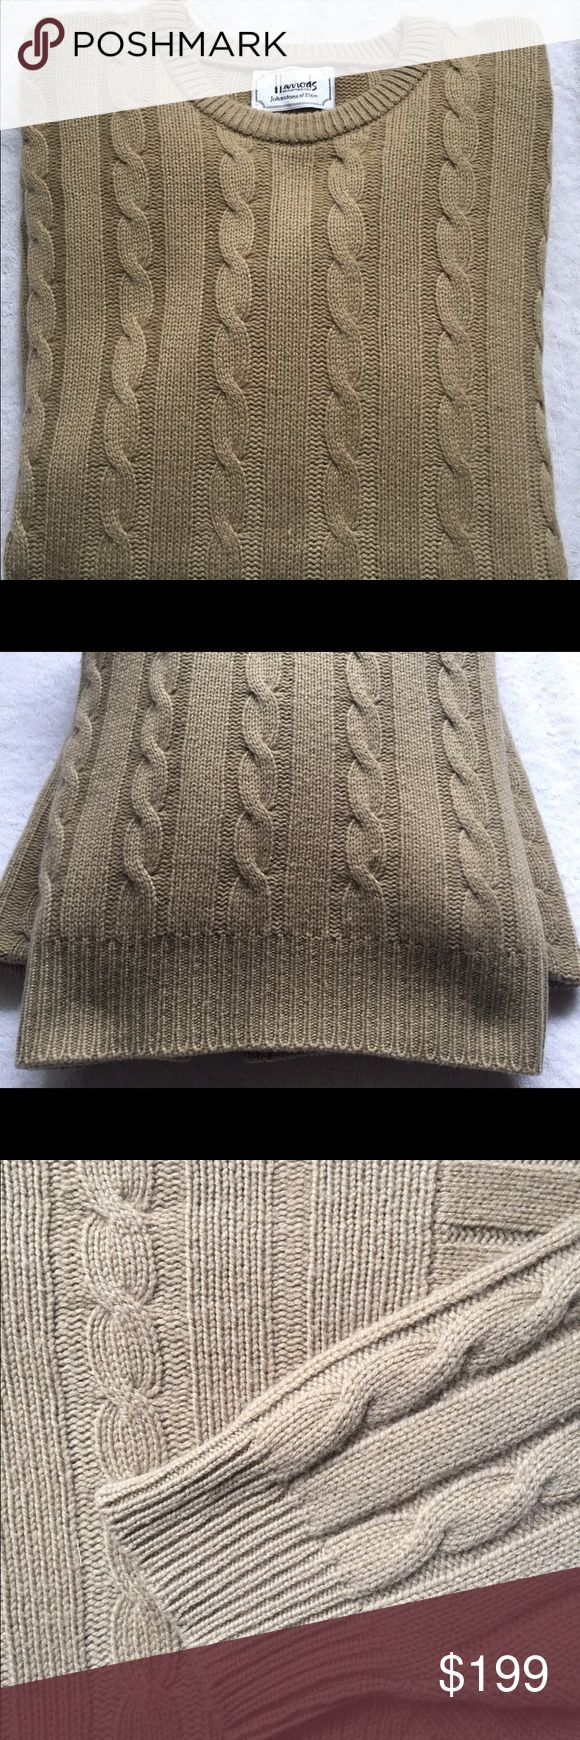 Johnston's of Elgin for Harrods Men's Cashmere Johnston of Elgin for Harrods 3-ply cashmere men's cable knit XL crewneck sweater. Purchased at Harrods in London this is one of the most luxurious & comfortable sweaters I have ever known. Ribbed cuffs, neck & waist. Amazing condition & beautiful dark Khaki color. Wear this on the coldest day or wrap your lover in it & just watch the look of pure joy on their face. If I could have this cut down I would!!! Johnston of Elgin Cashmere Sweaters…